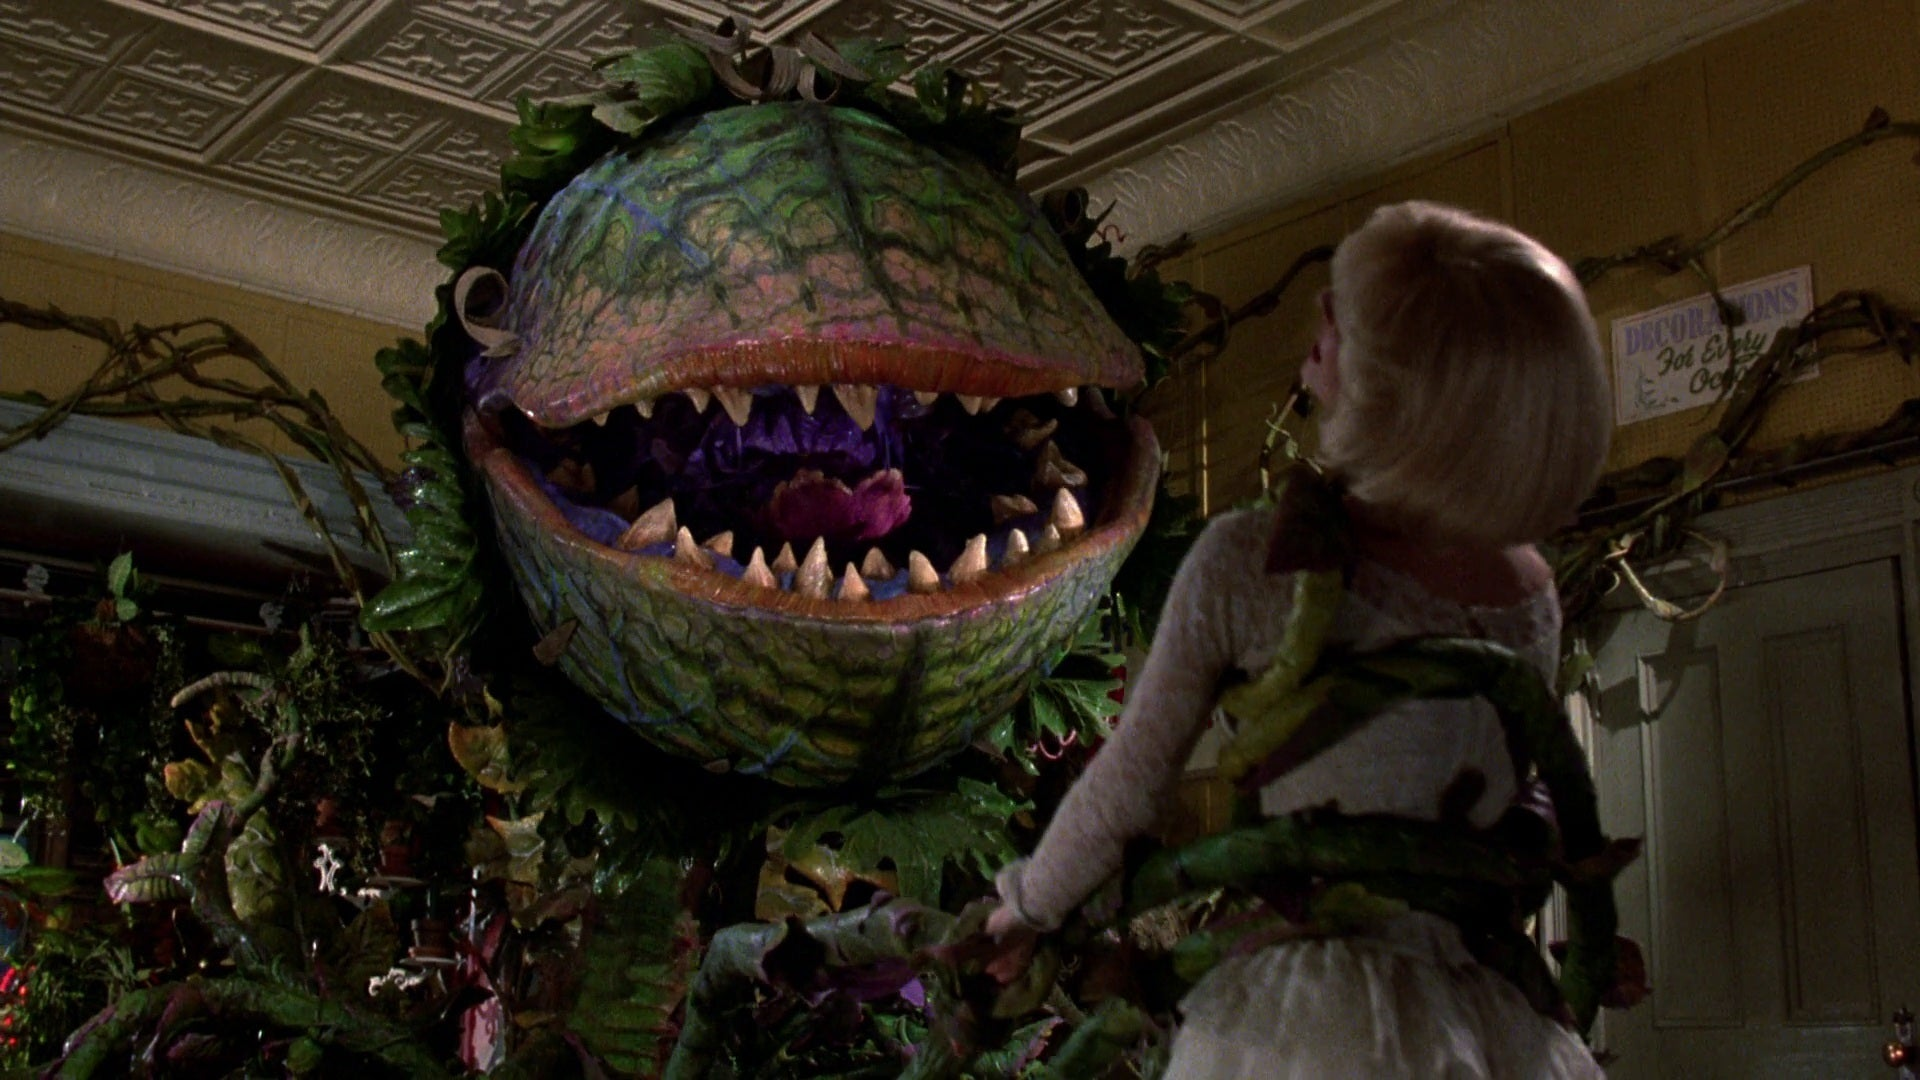 The Guy Behind CW's DC Universe Is Remaking Little Shop Of Horrors